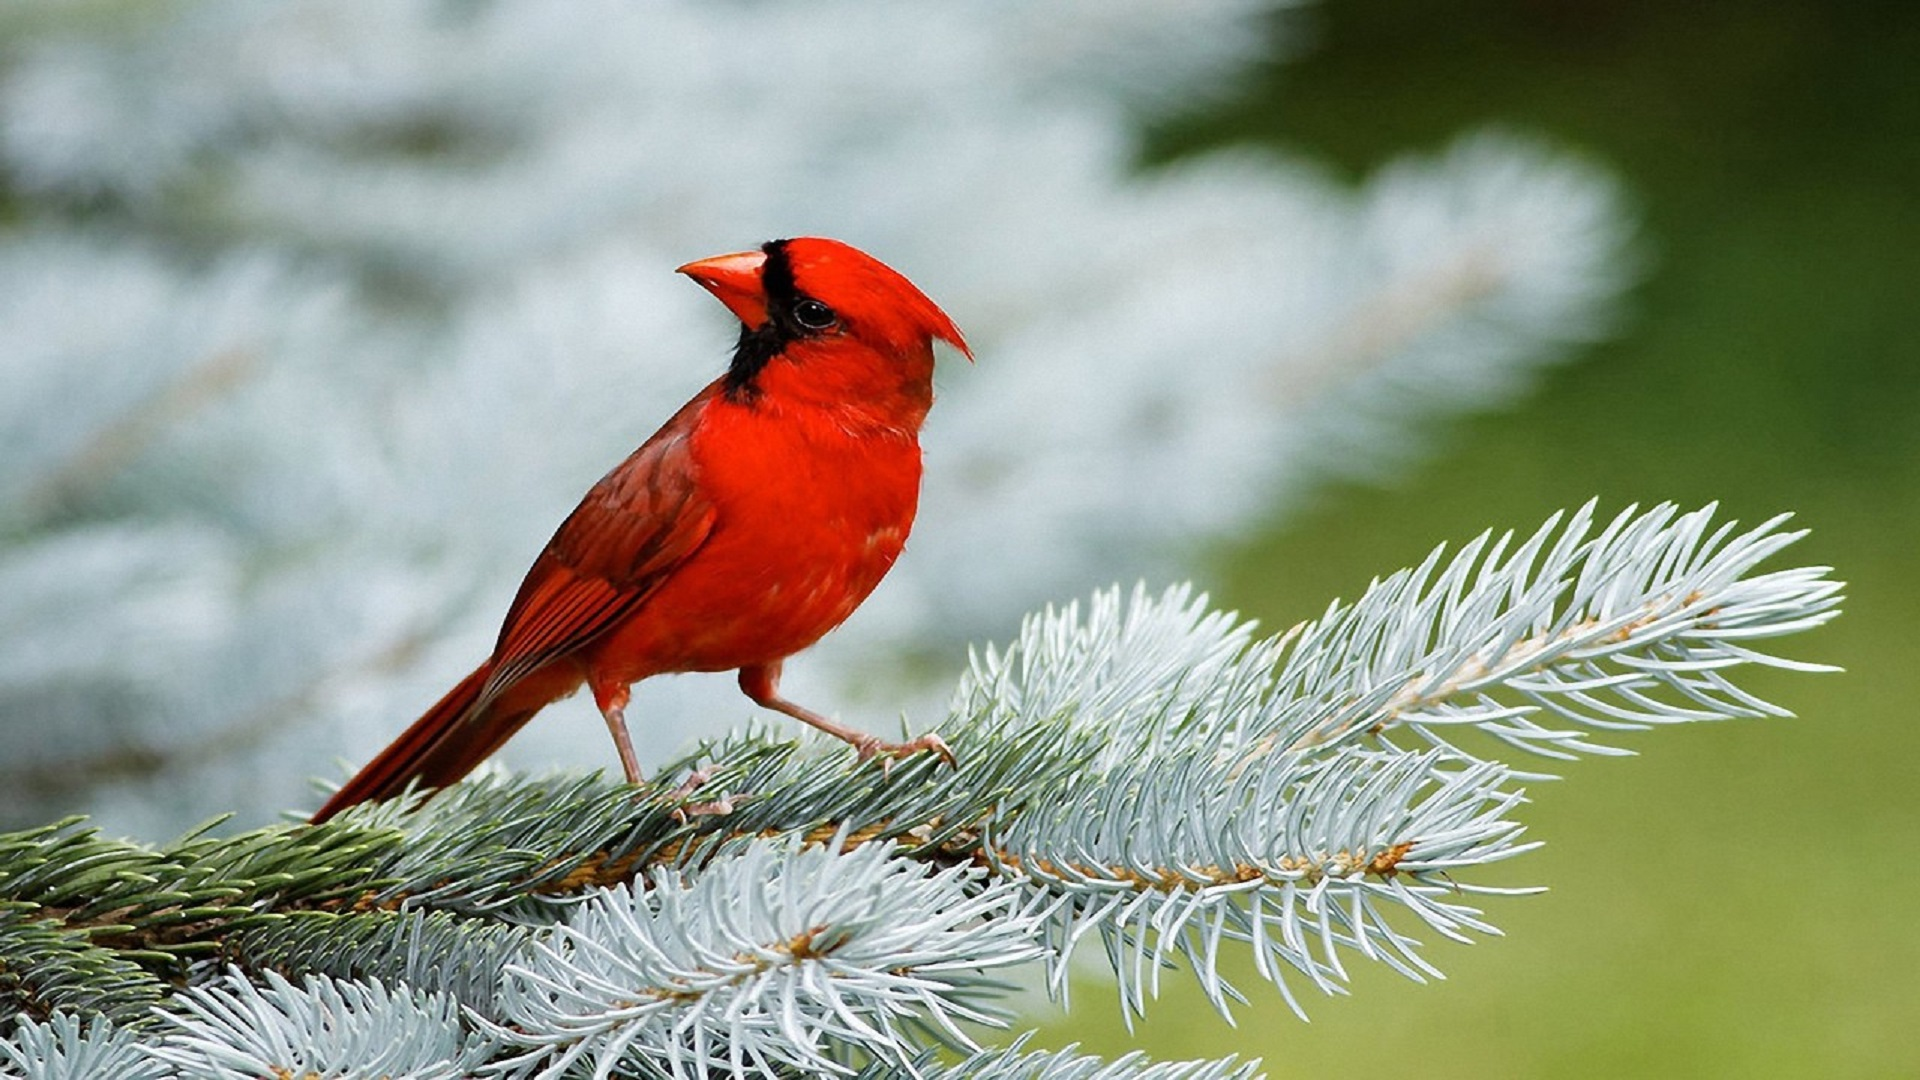 Dwnld Cute Little Bird Walpaper Free Fr Mobile: Best-top-Desktop-Birds-Wallpapers